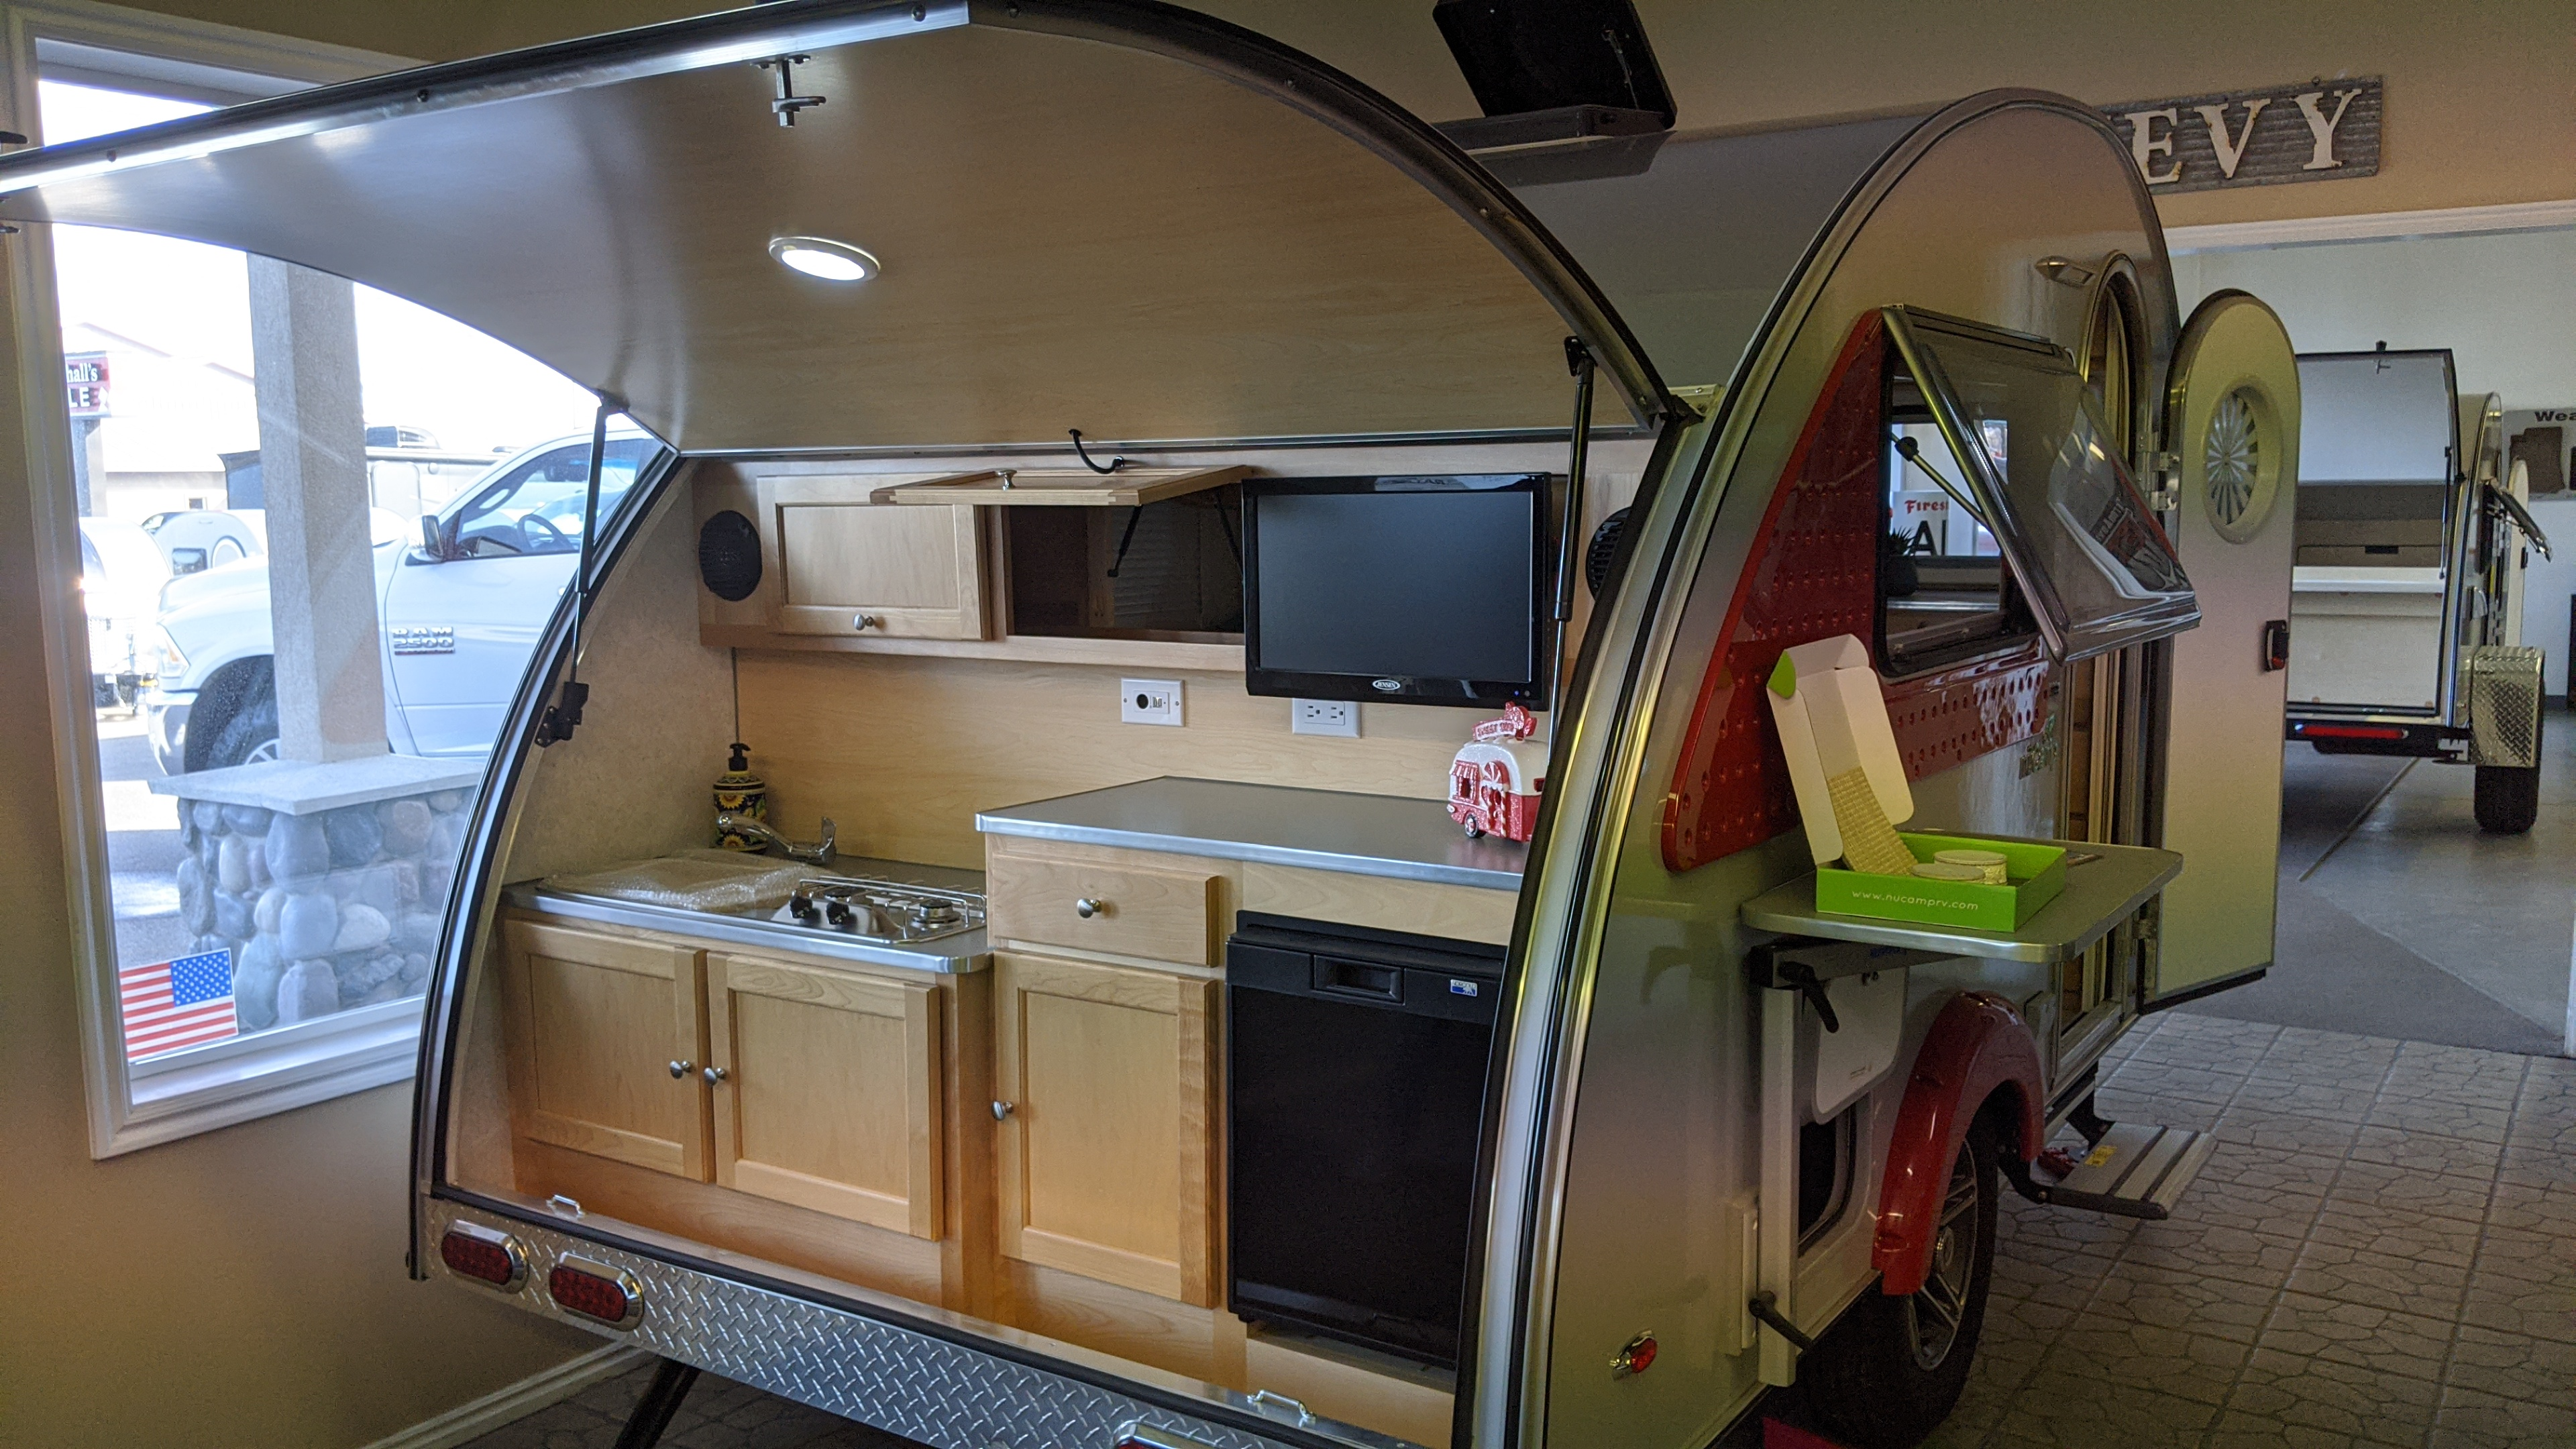 Open Air Kitchen with TV, Fridge,2 burner stove and Sink. Includes dishes, pots, pans and coffee percolator!. T@B 320 CS-S Clamshell 2019